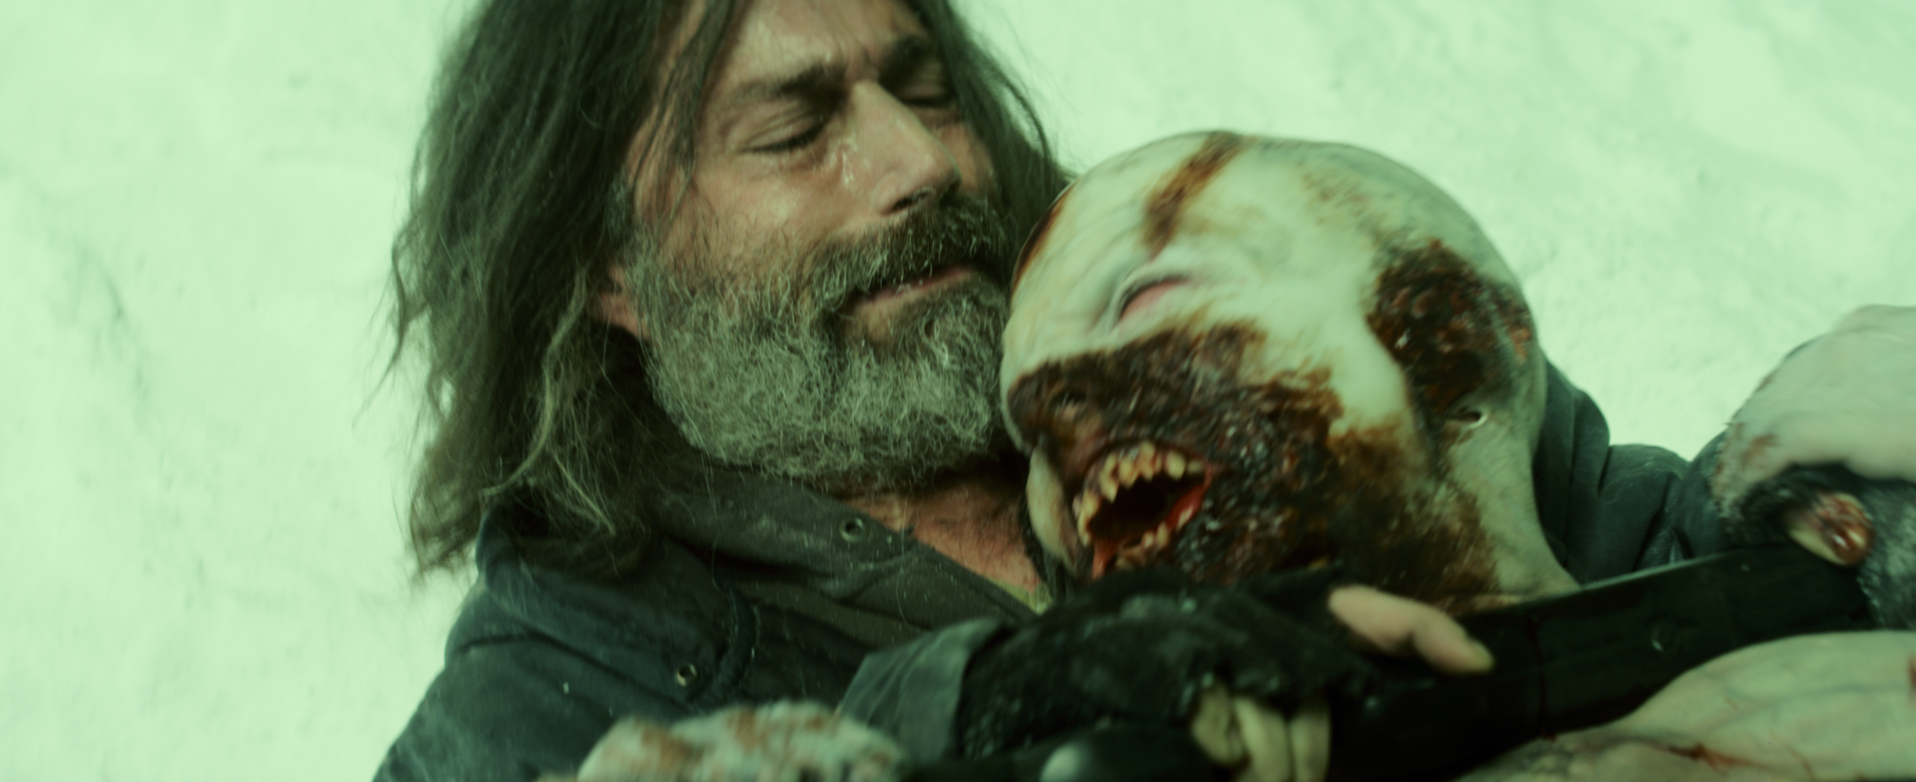 EXTINCTION-still4-Patrick-Matthew-Fox-tangles-with-zombie-courtesy-Vertical-Entertainment